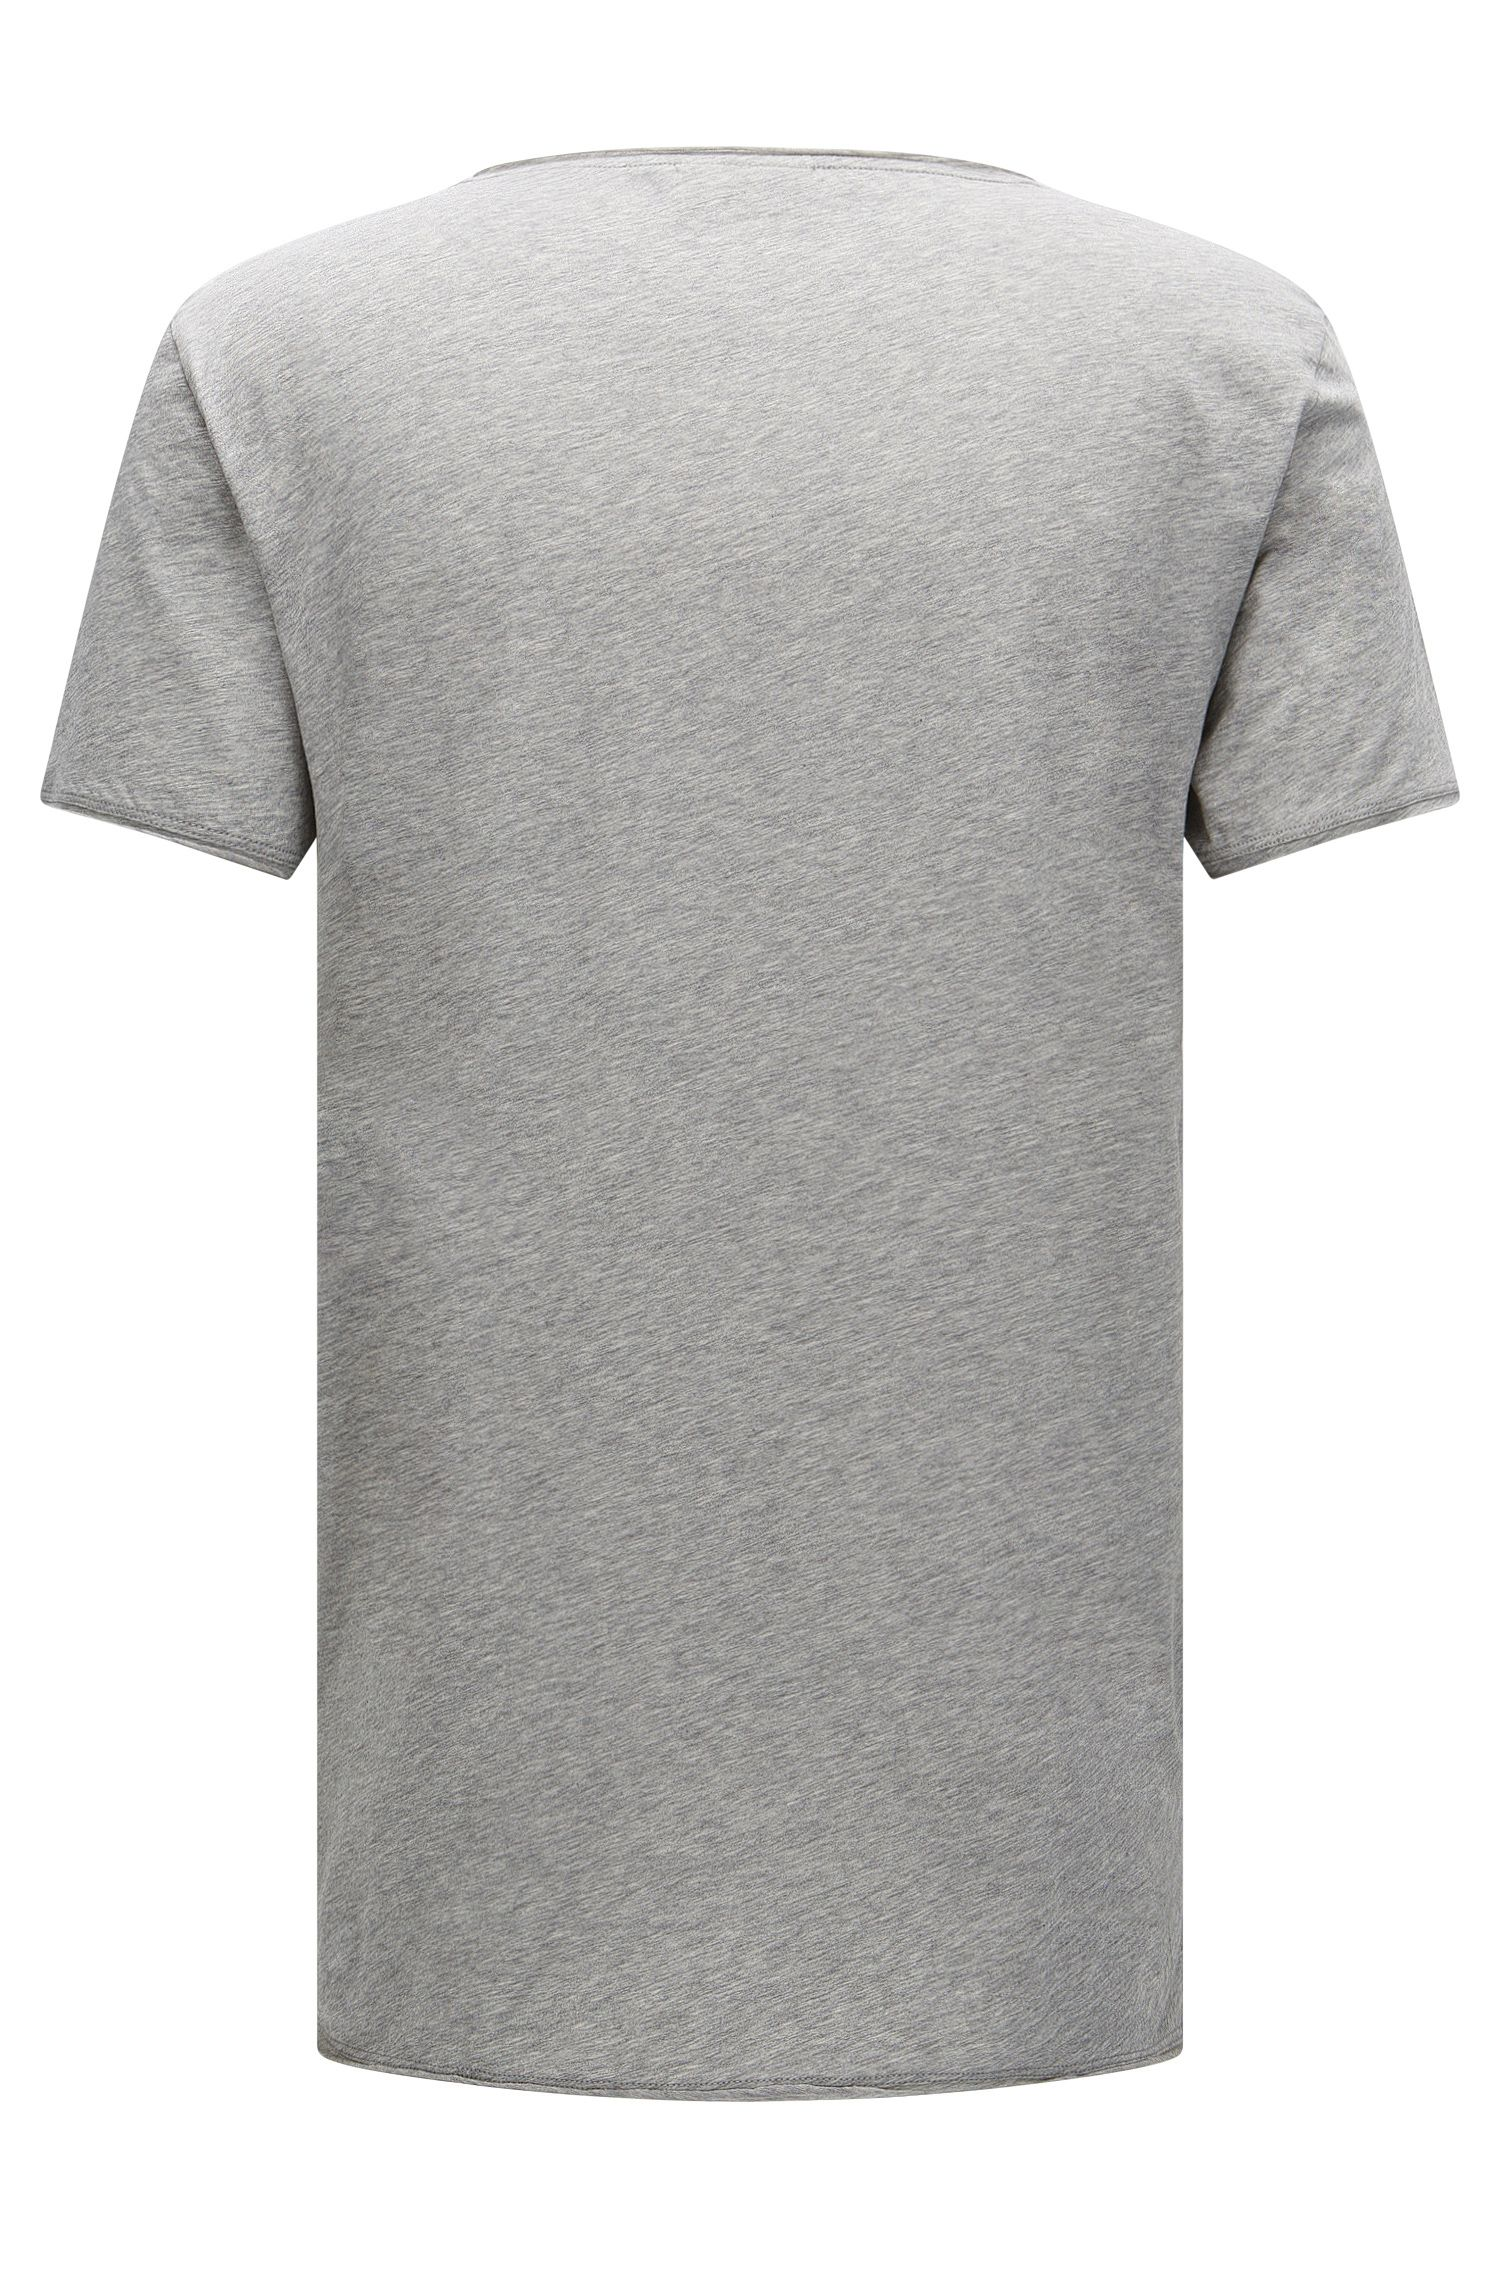 T-shirt relaxed fit in cotone Supima